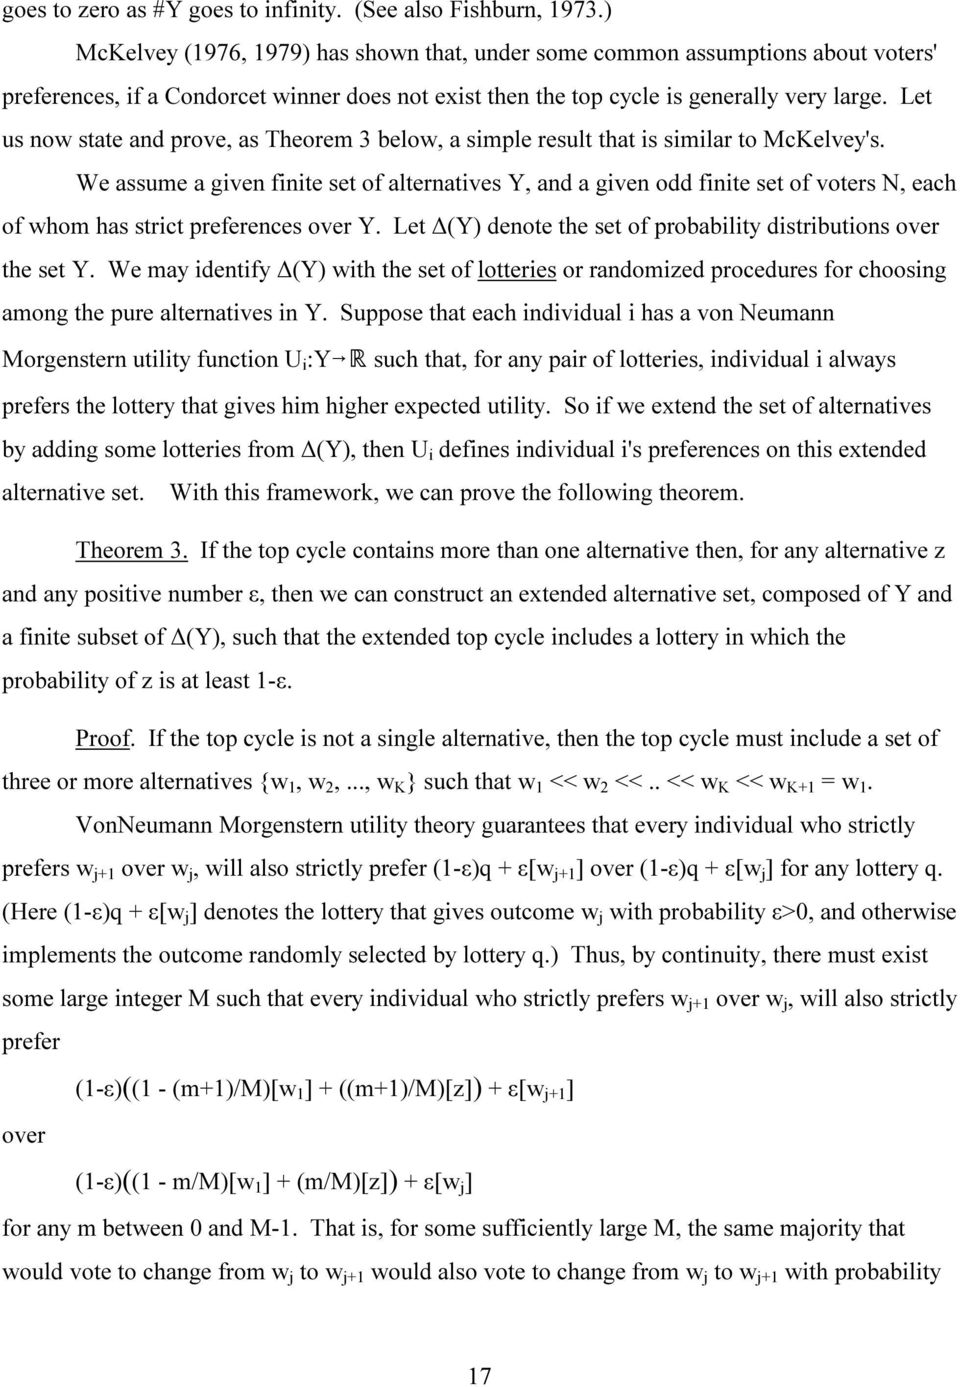 Let us now state and prove, as Theorem 3 below, a simple result that is similar to McKelvey's.